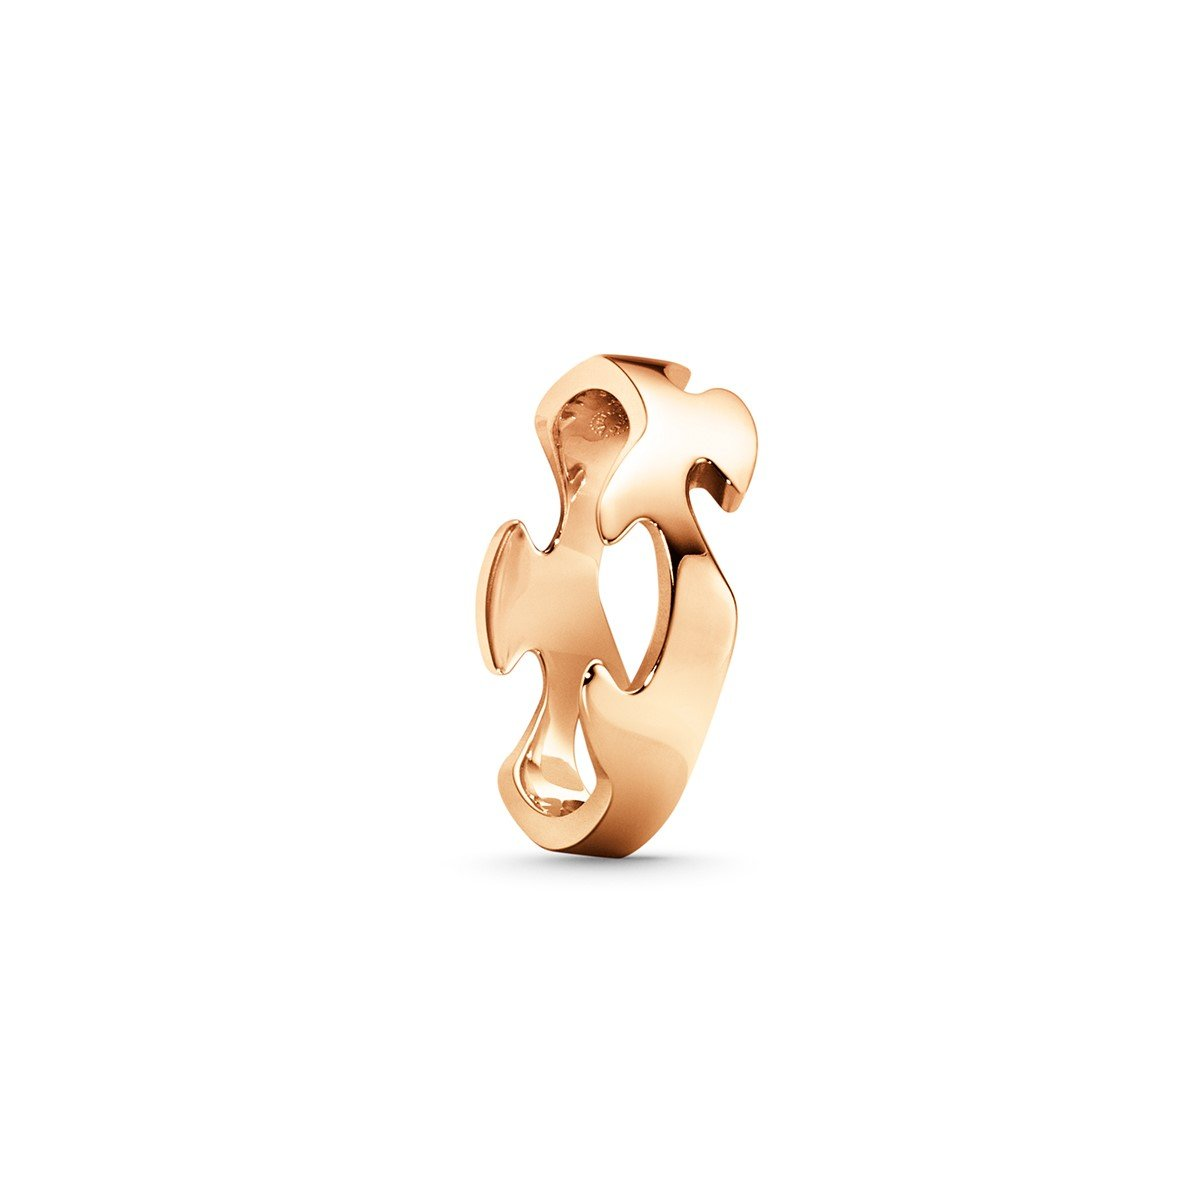 Georg Jensen Fusion Centre Ring in 18ct Rose Gold-Hamilton & Inches